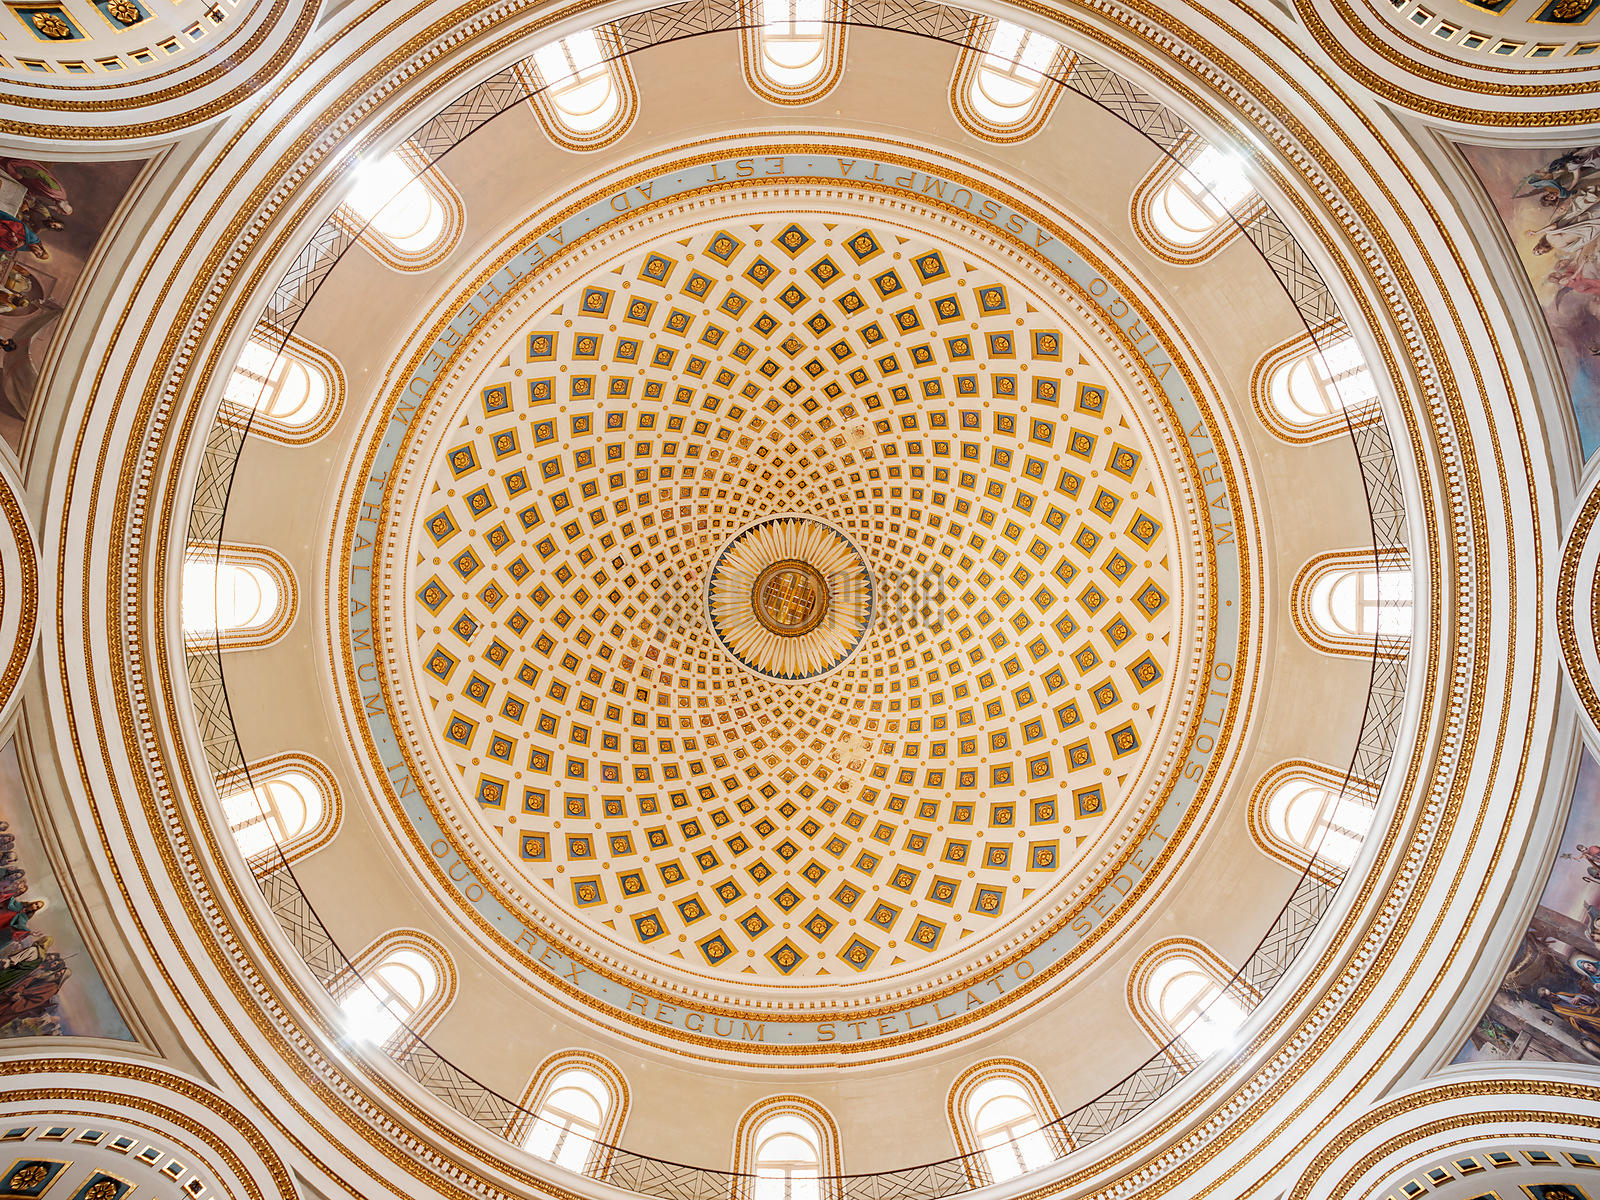 Looking up into the Interior of the Dome of Church of the Assumption of Our Lady